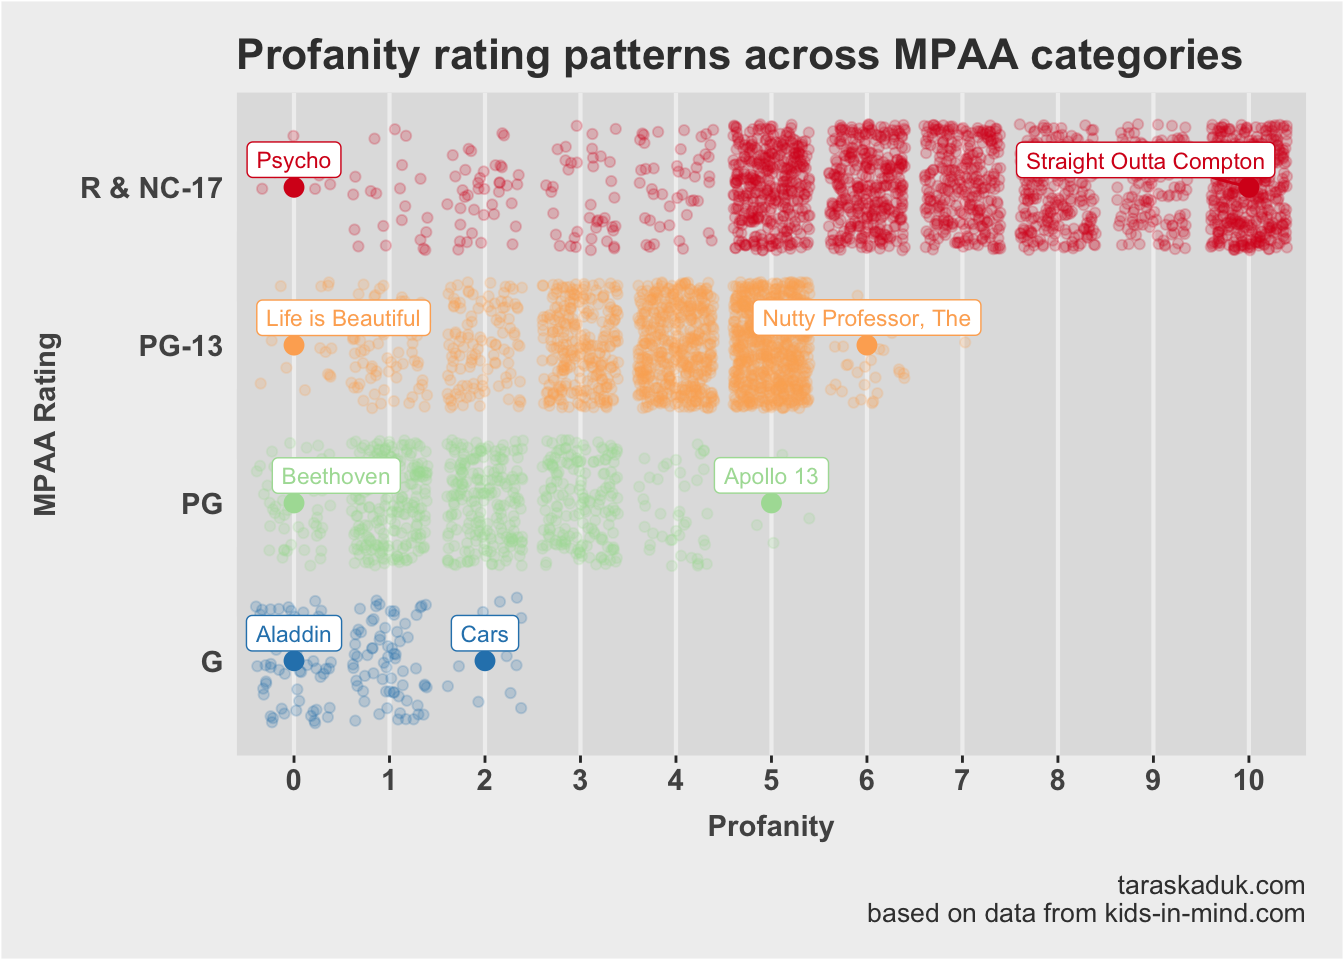 Unlike other categories, where scores flow gradually from category to category, profanity has some clear trends